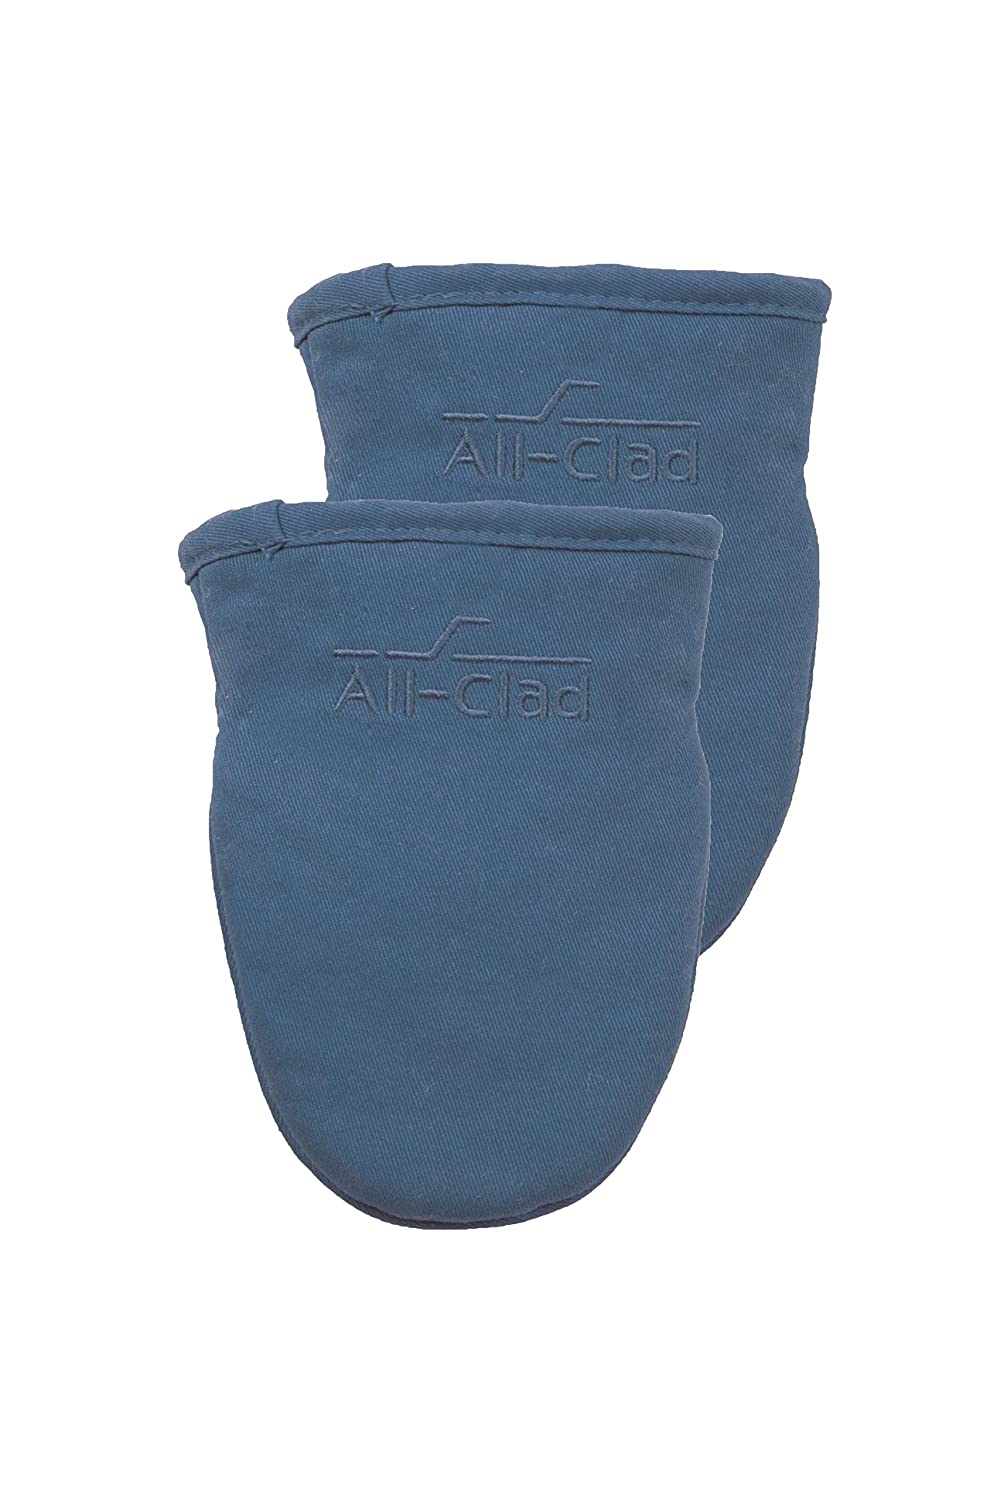 All-Clad Textiles 89816 Grabber Mitt, 2-Pack, Cornflower